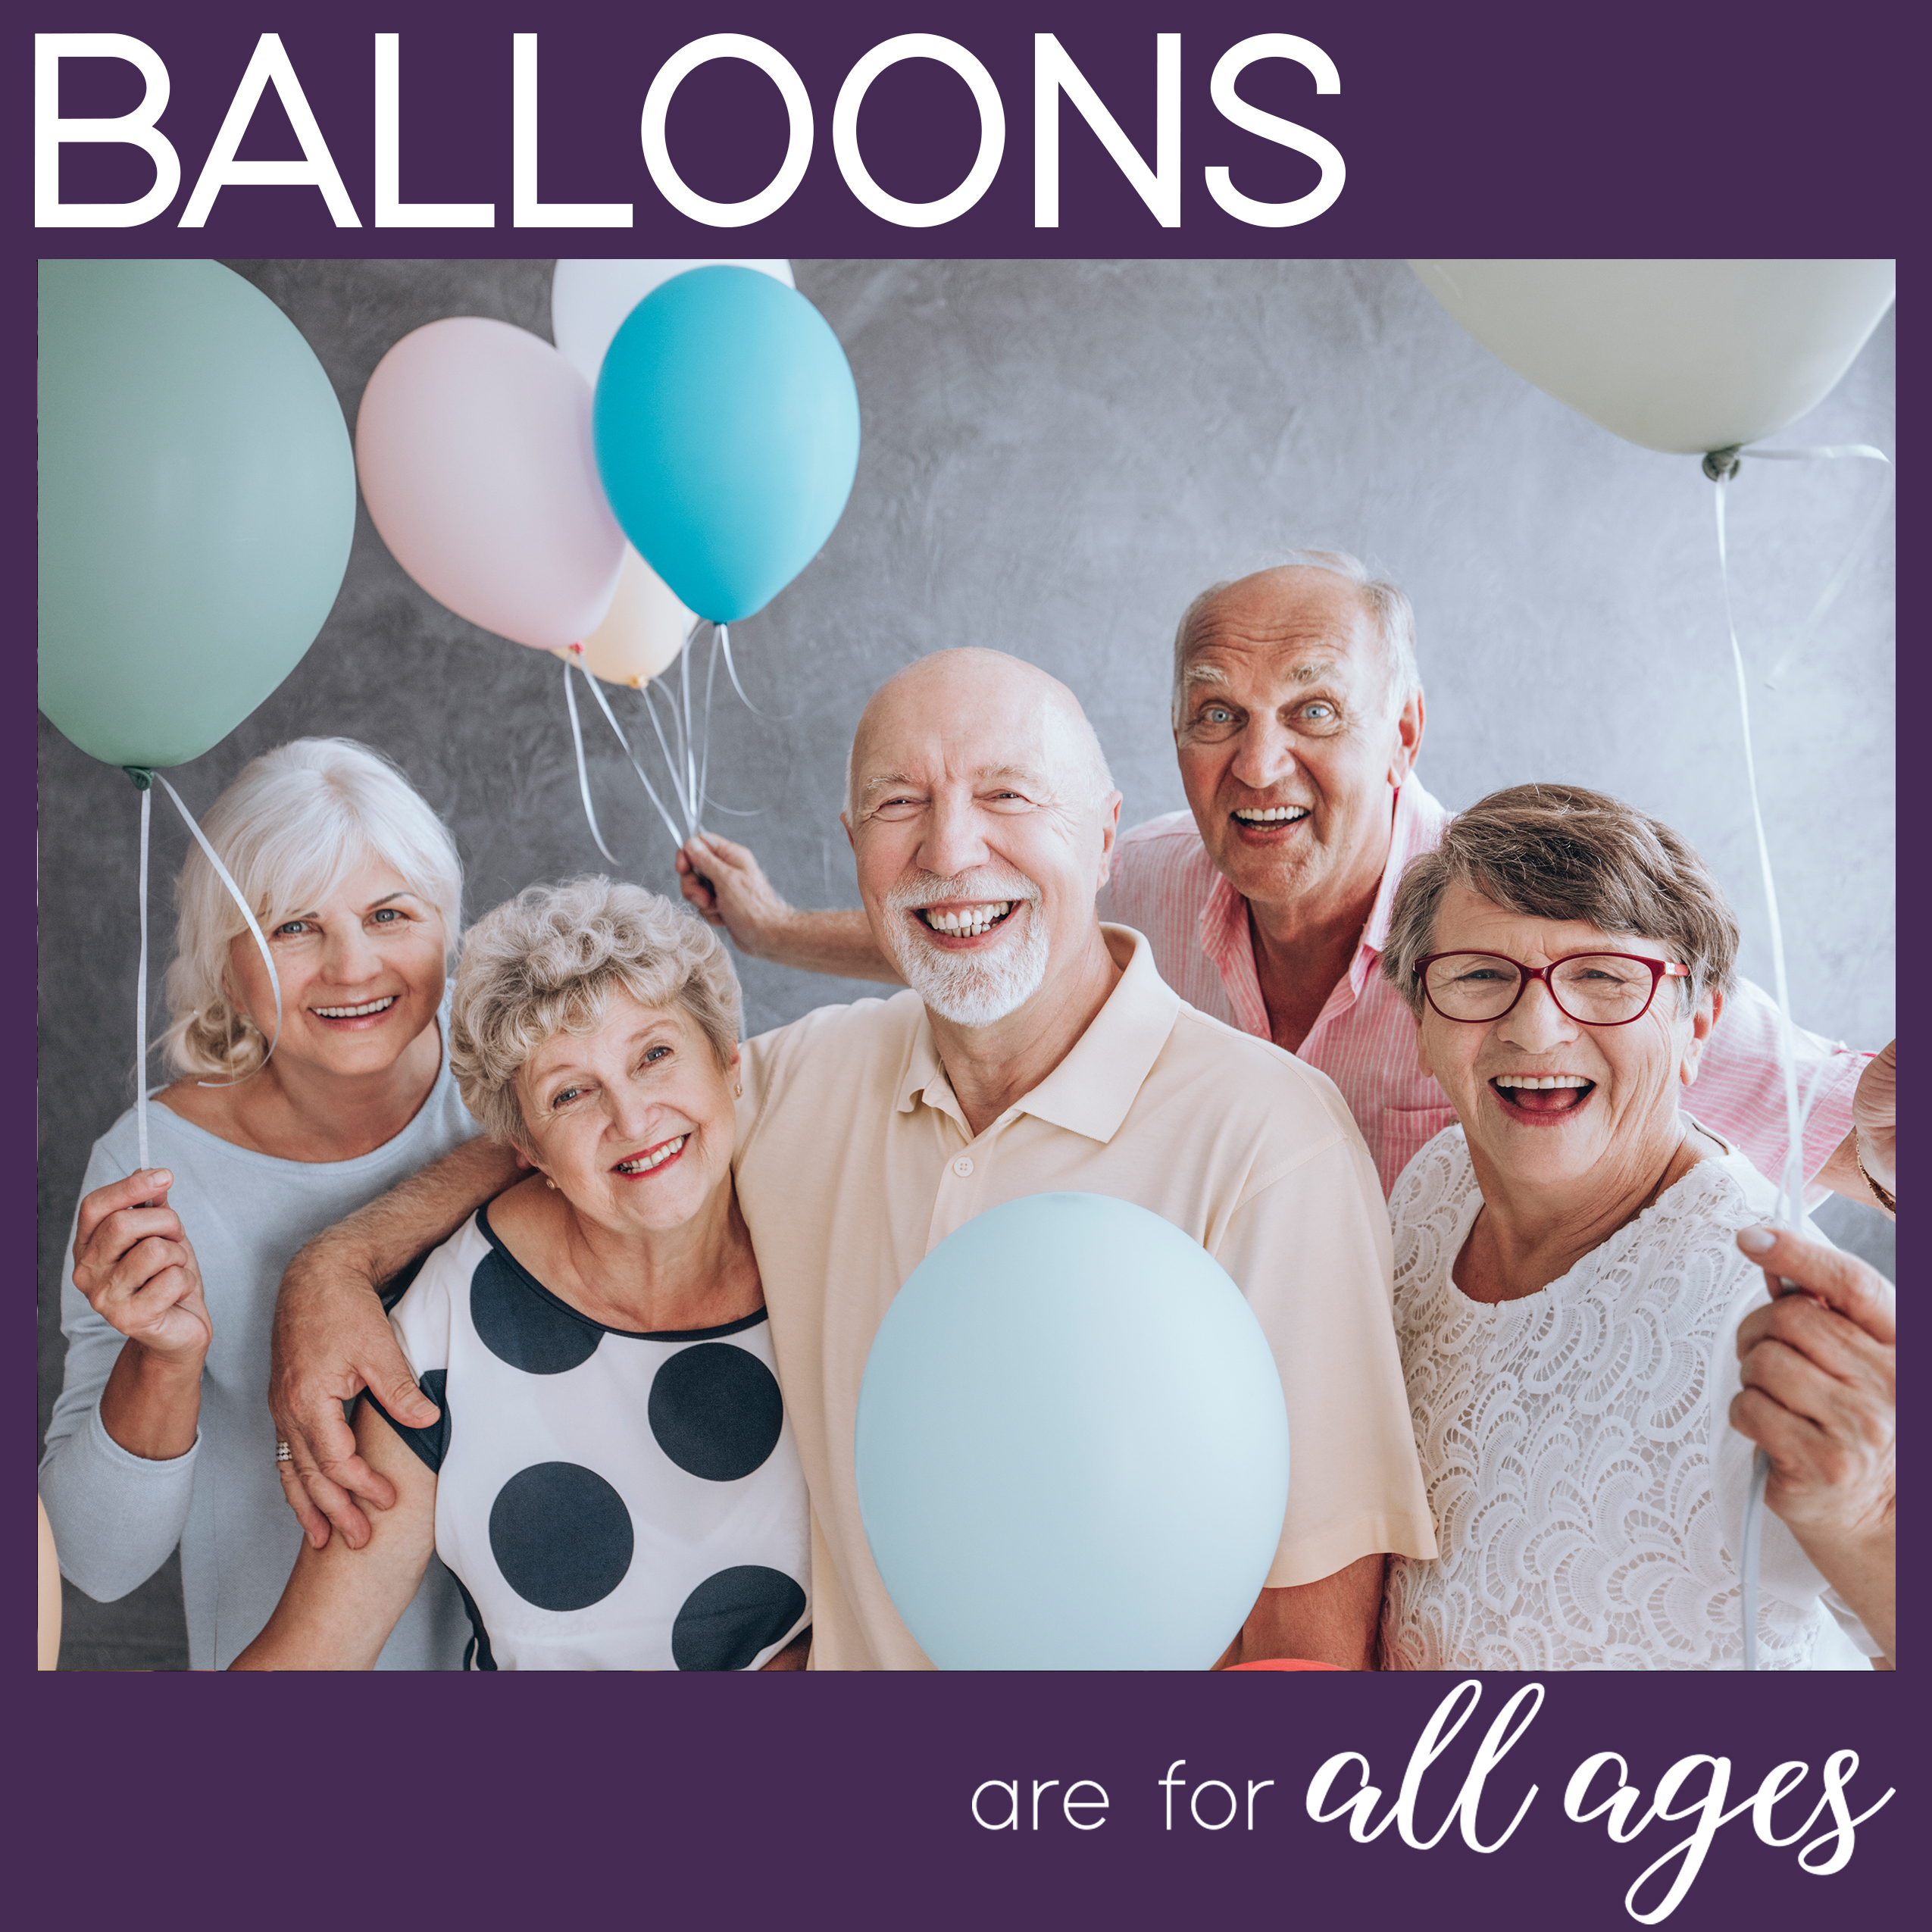 Balloon Facts - Balloons are for all ages